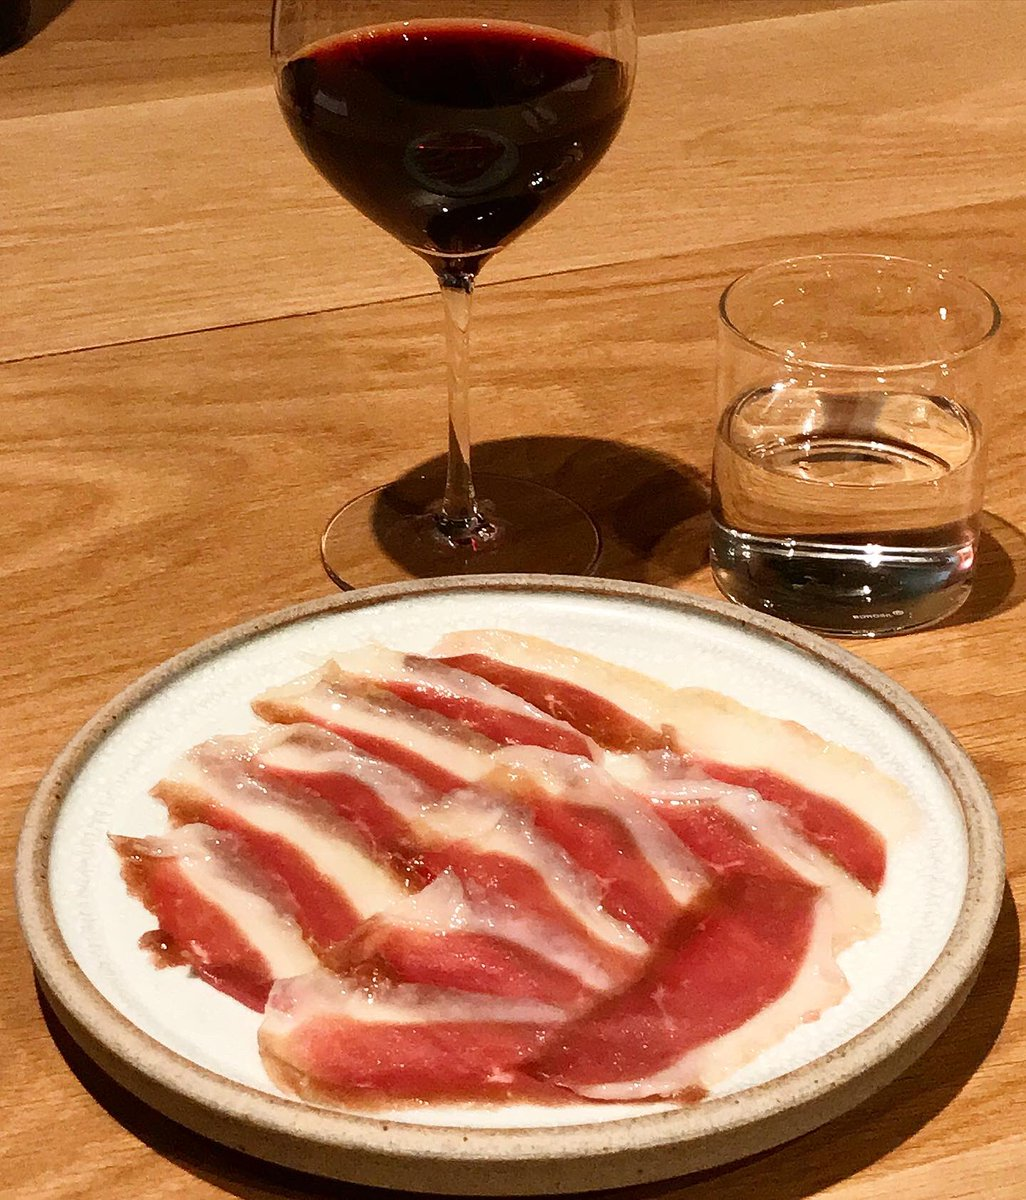 Duck ham, cured in-house.  A lovely soft Sicilian red in the glass.  All's well with the world. . #duck #ham #duckham #caveman #winebar #k5 #kabutocho  #鴨生ハム #自家製 #ケイブマン #ワインバー #ケーファイブ https://t.co/4jqBPtcZdx